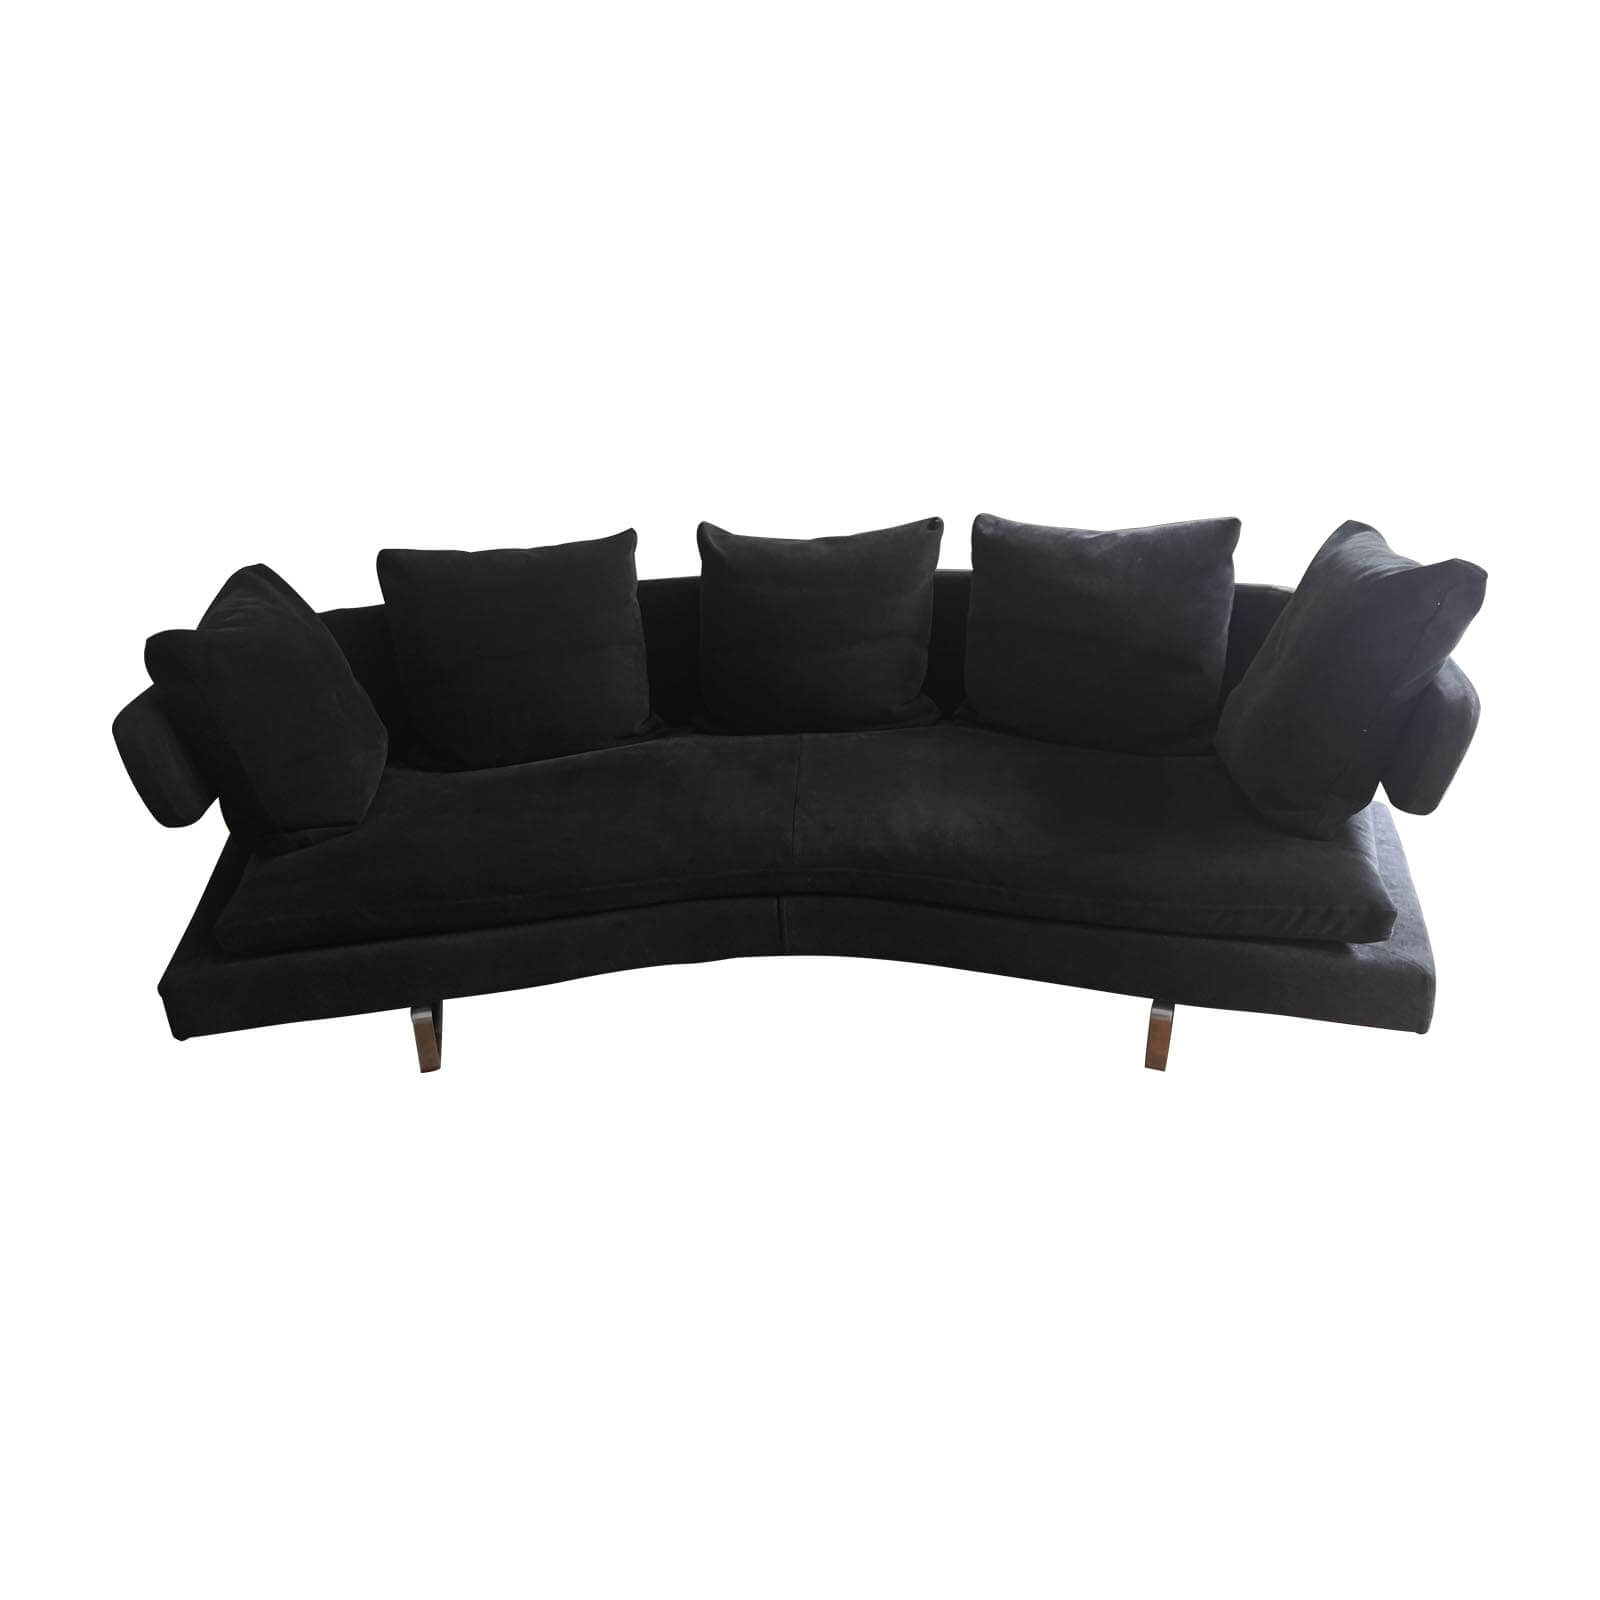 Two Design Lovers B&B Italia Arne sofa anthracite